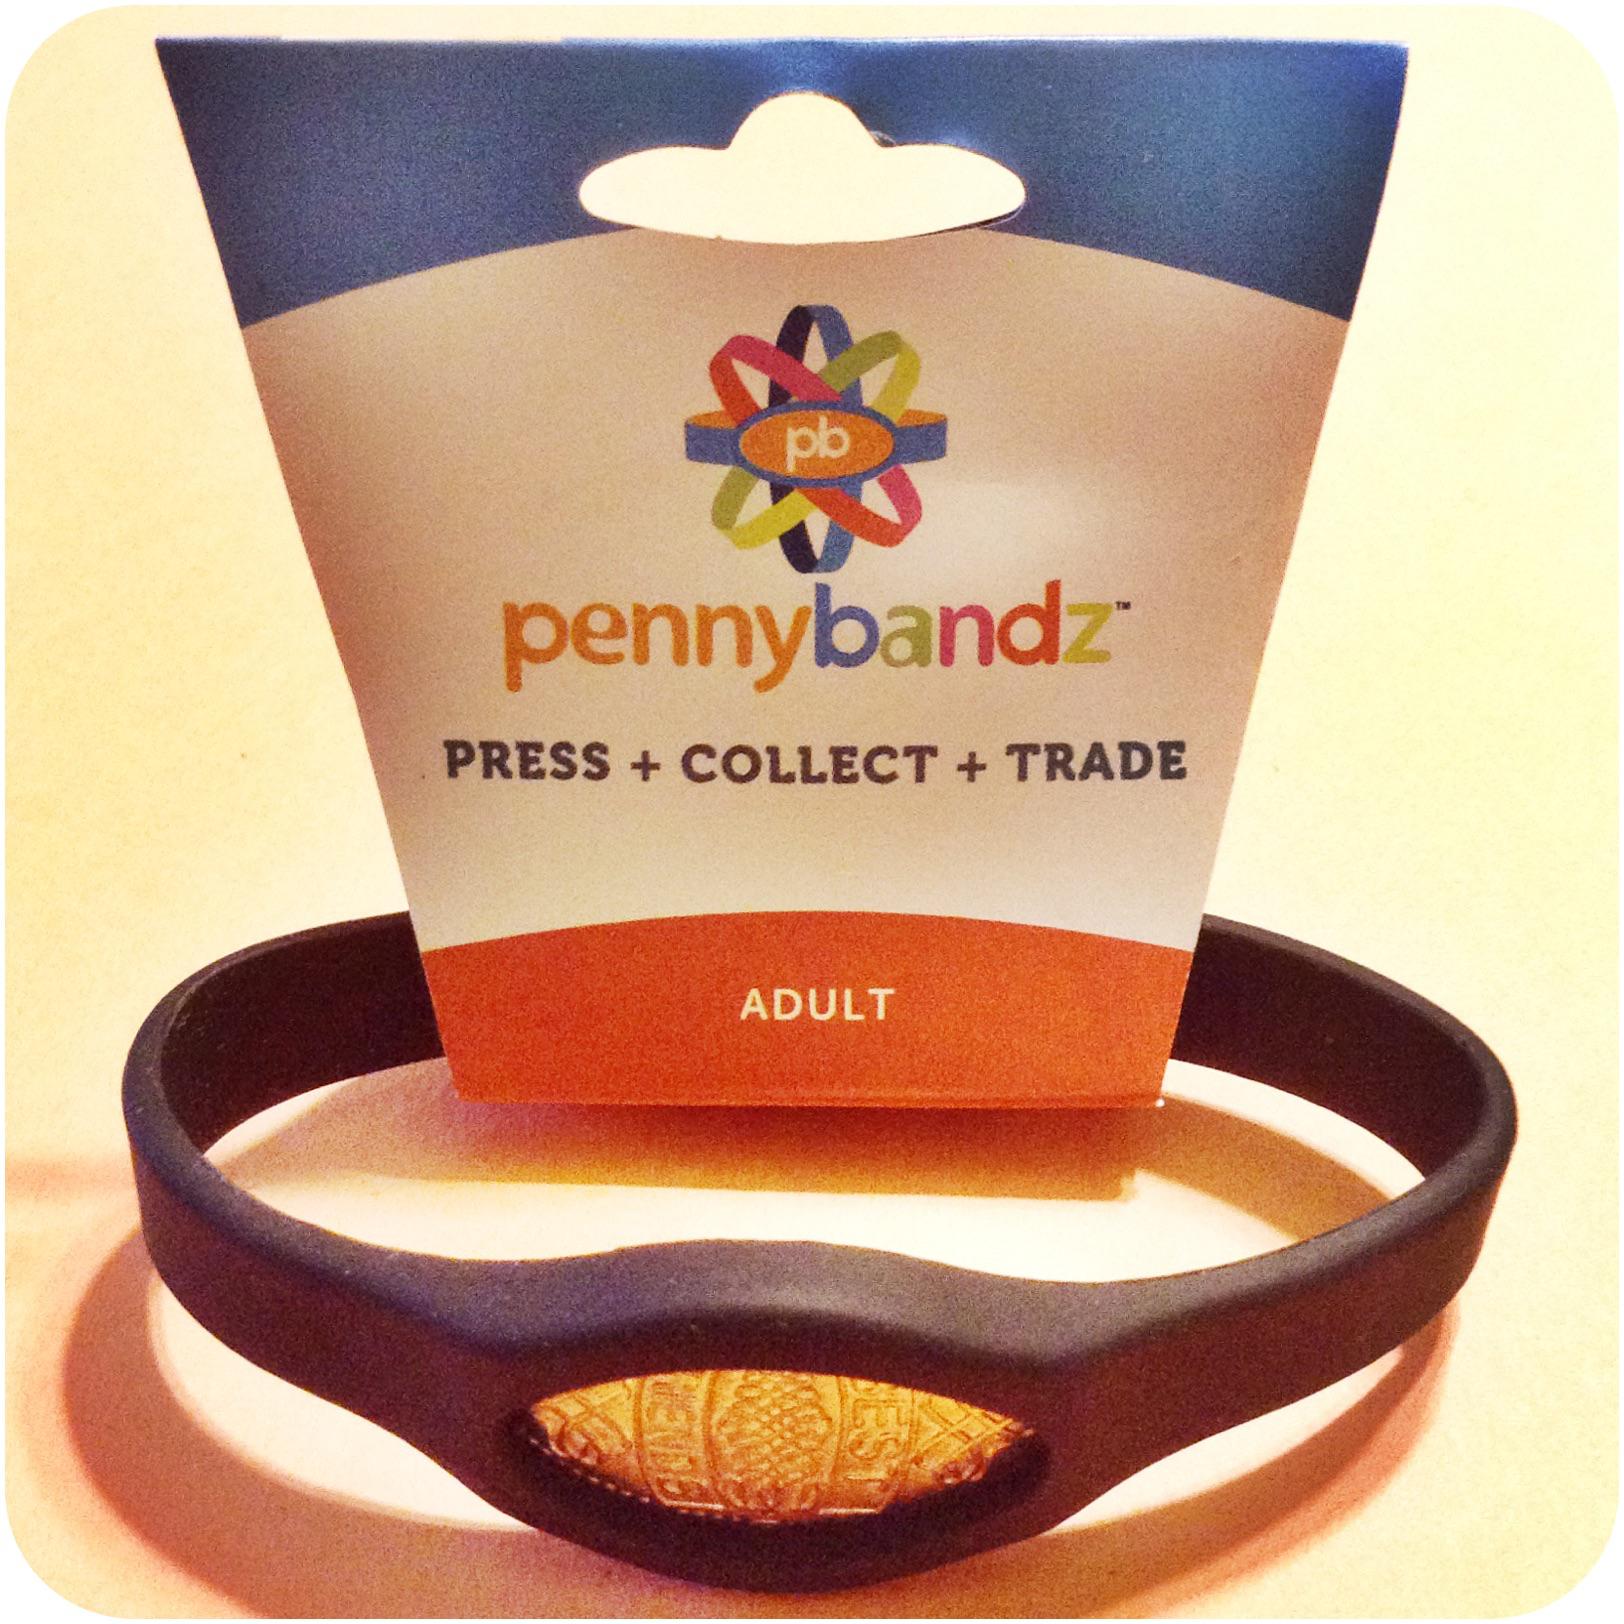 Pennybandz® Elongated Pressed Penny Holder Wristband Adult Size Large Black Wolf